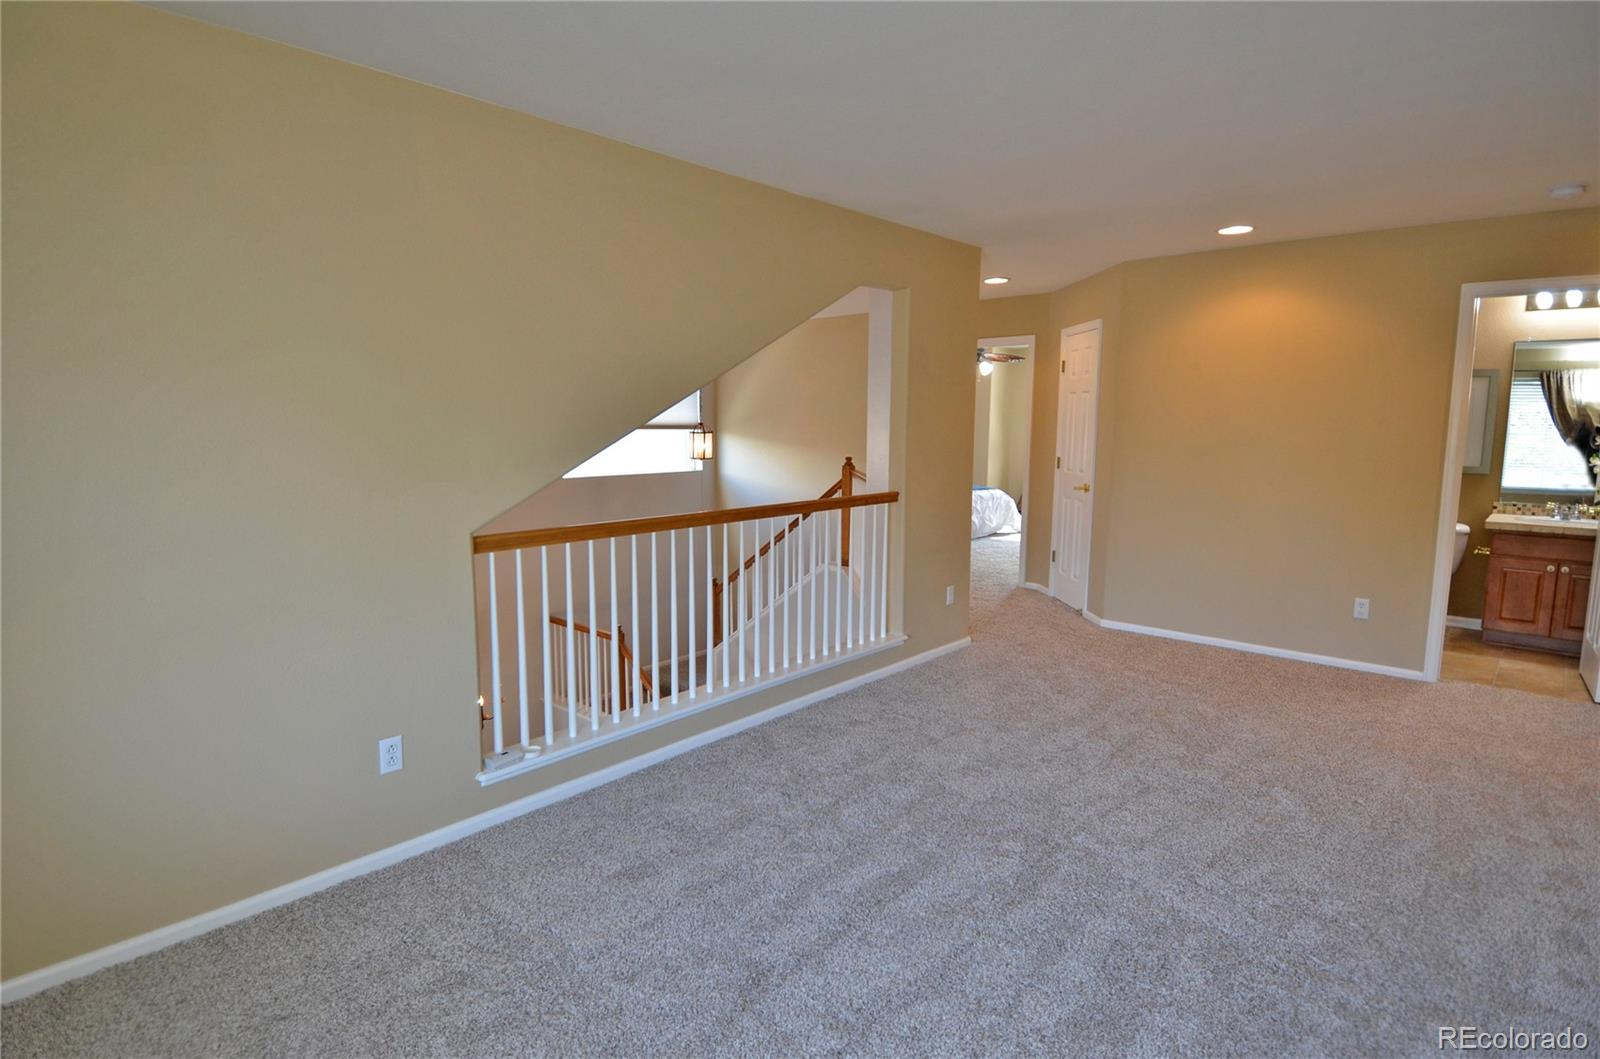 MLS# 2831572 - 23 - 10699 Wynspire Way, Highlands Ranch, CO 80130